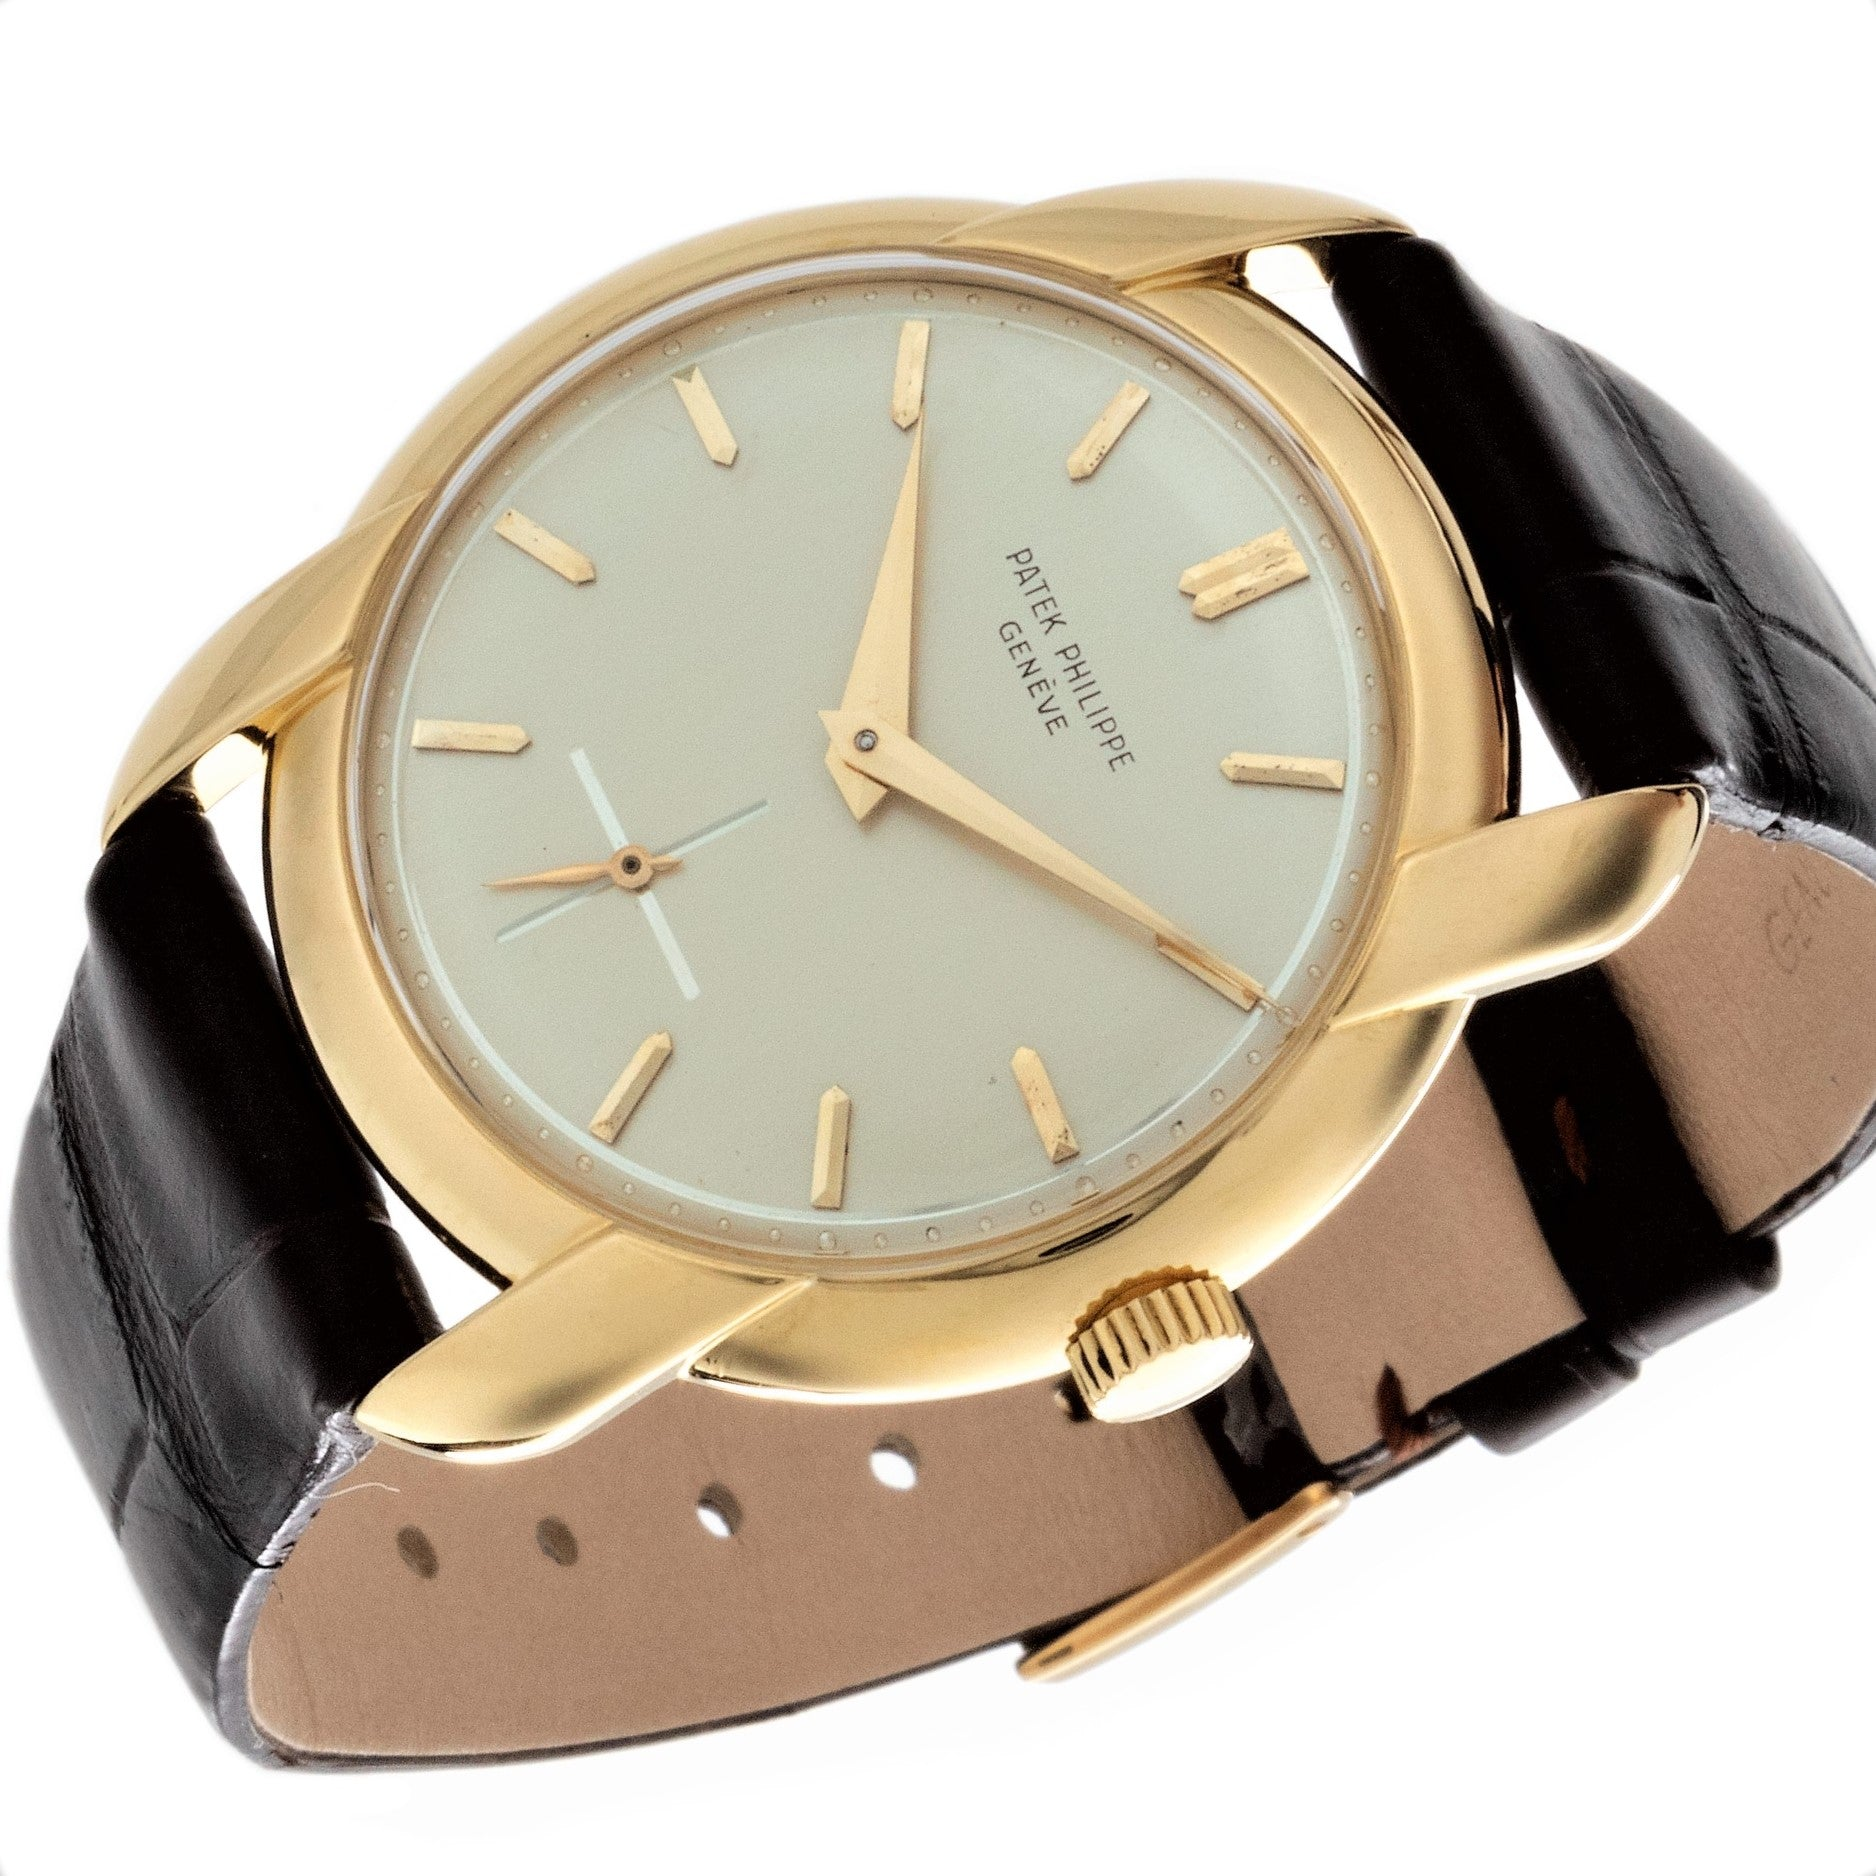 Patek Philippe 2536J Calatrava Watch